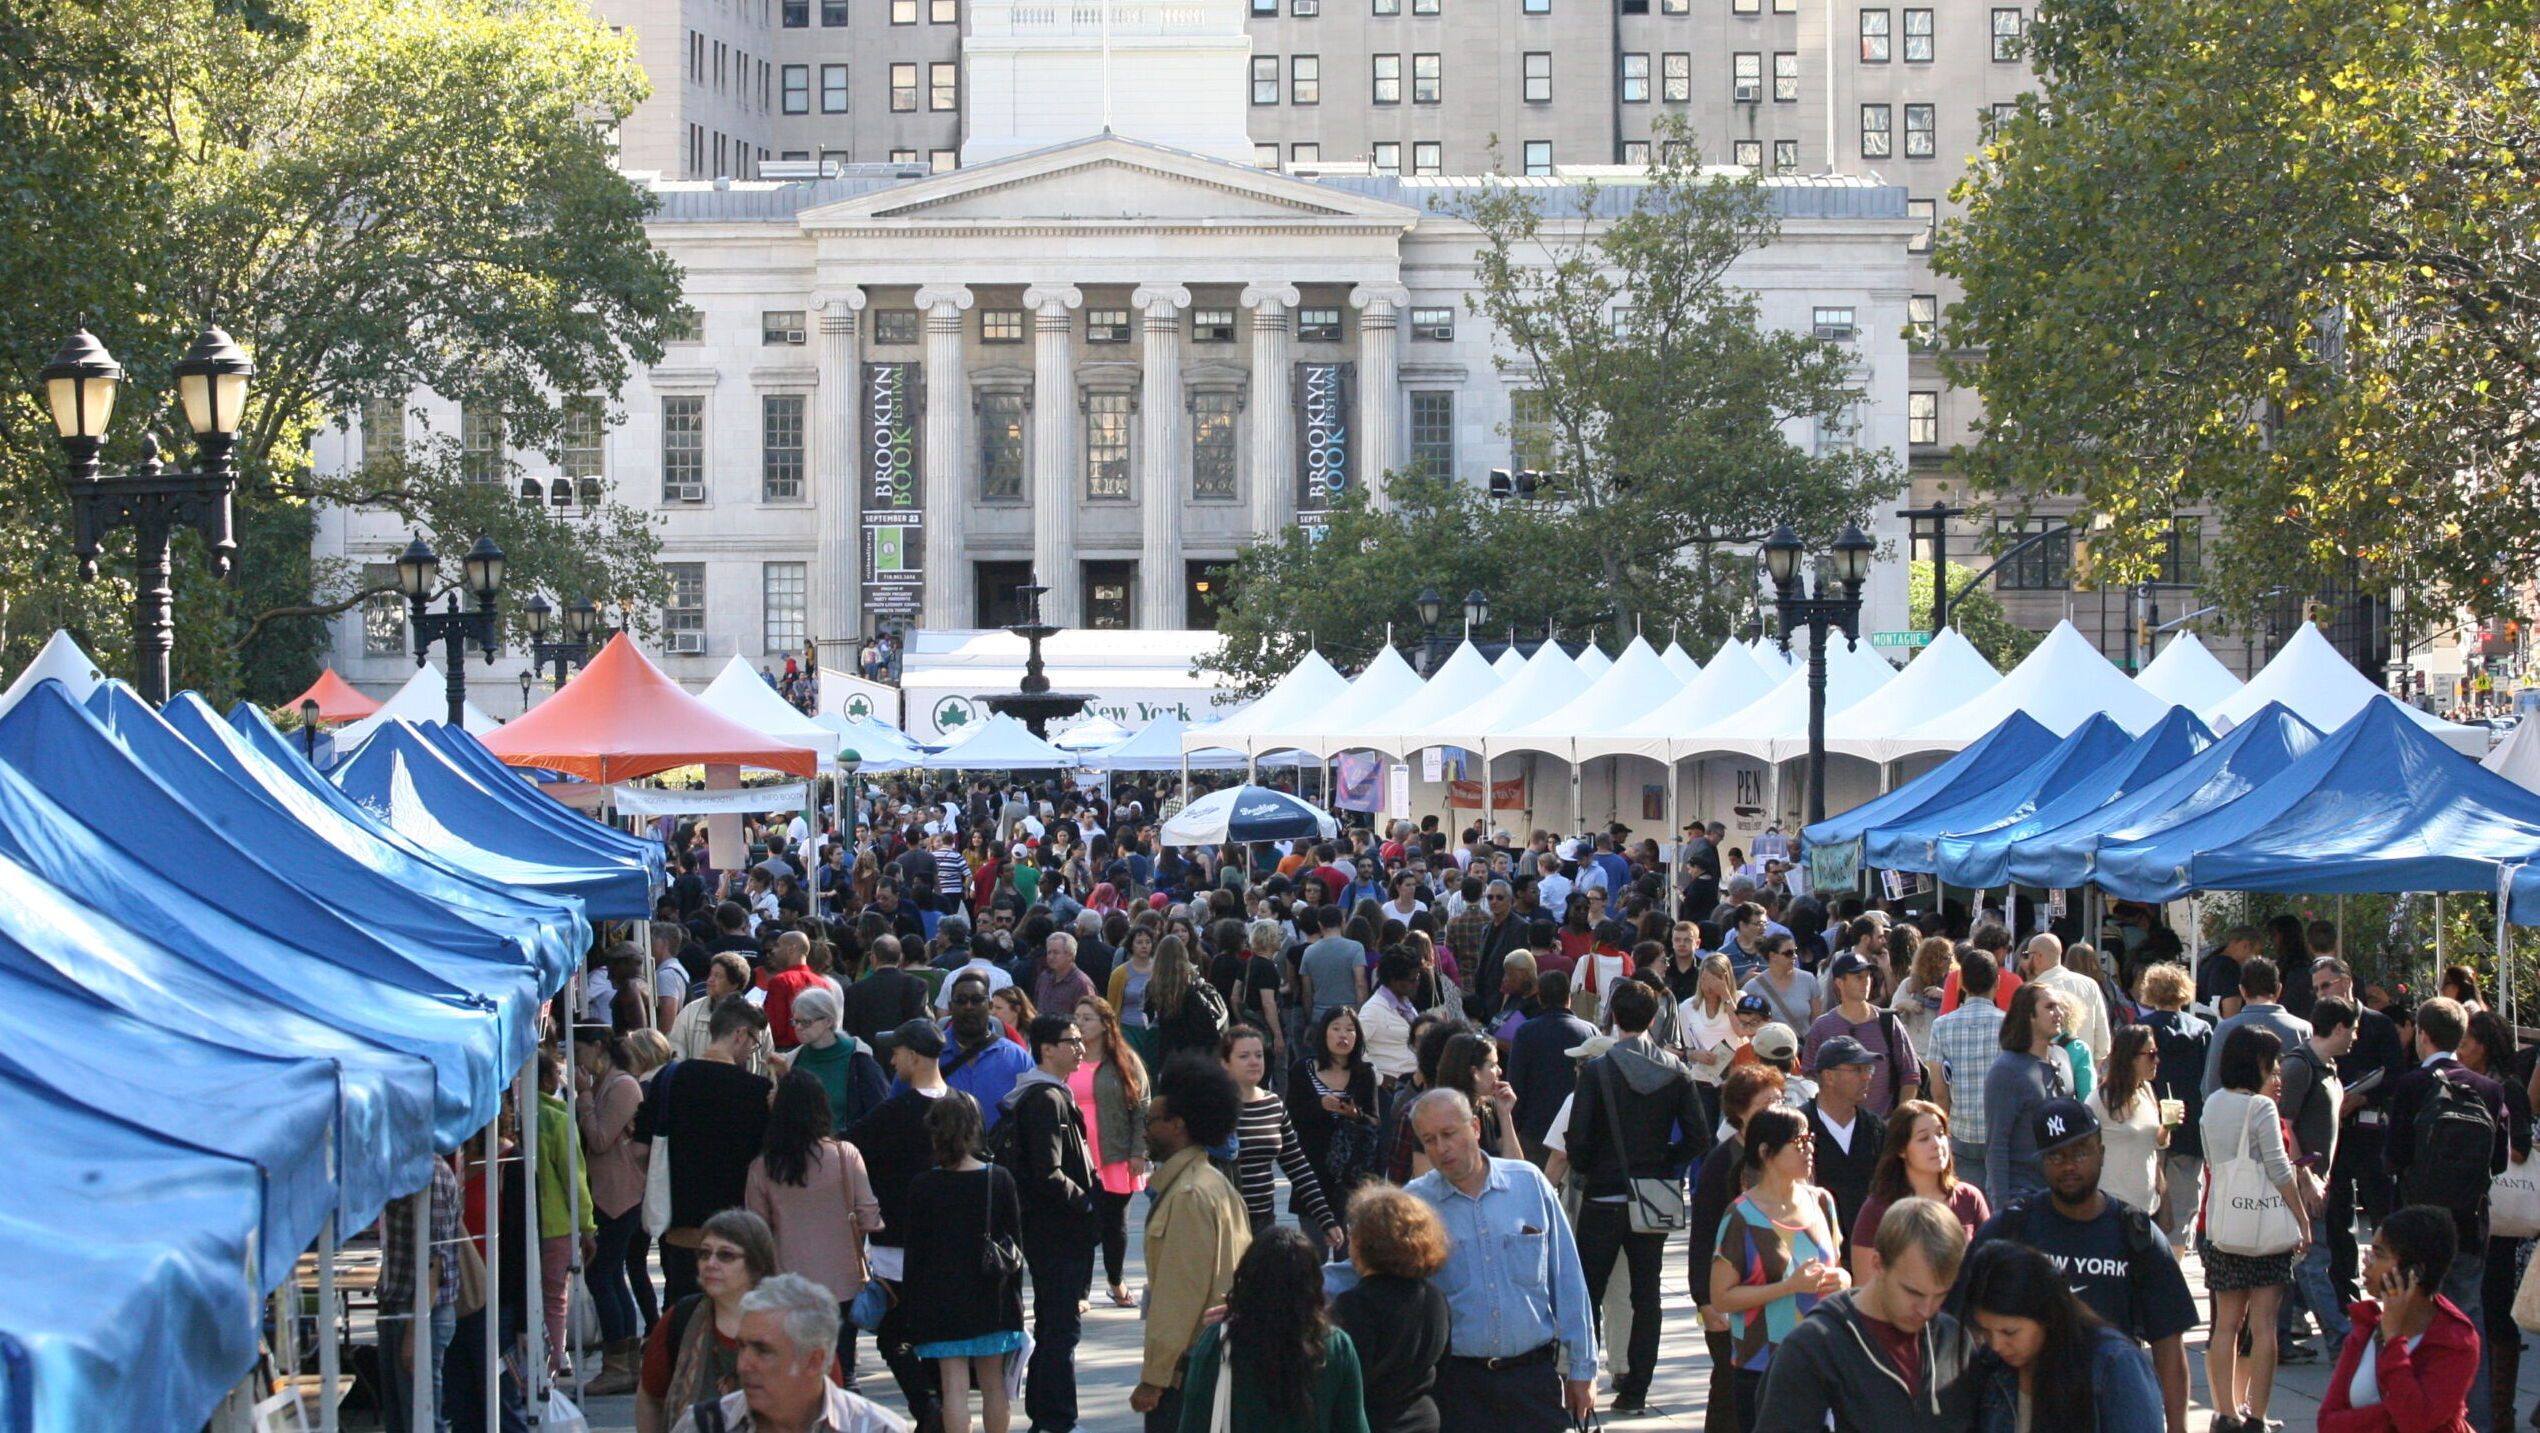 A crowd of people between rows of blue canopy tents. In the background is a white building with columns and peaks of white tents.